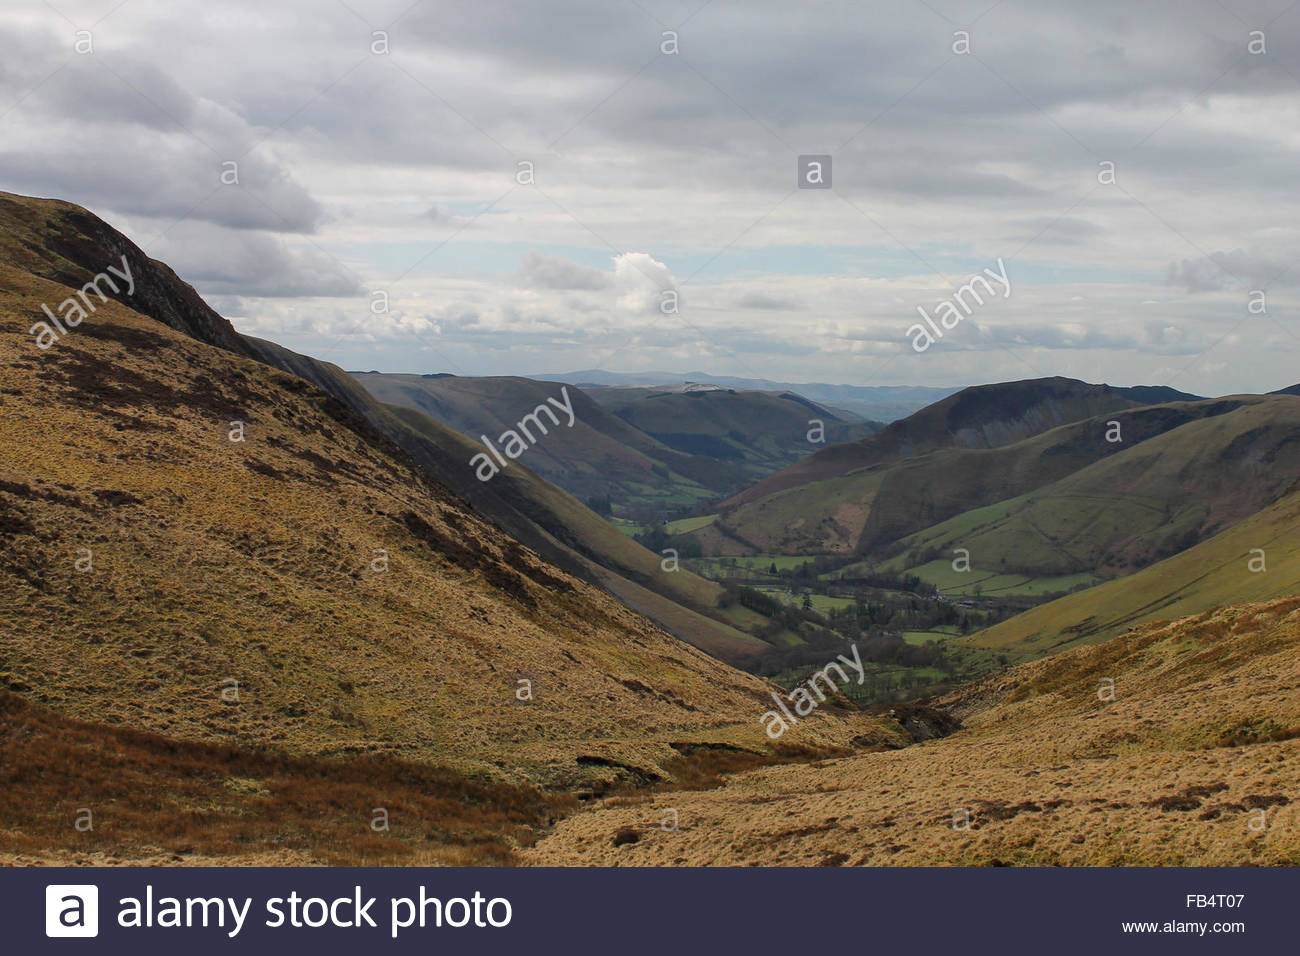 Bwlch y Groes North Wales, Views of valley from mountain road leading from Bwlch Y Groes to ...